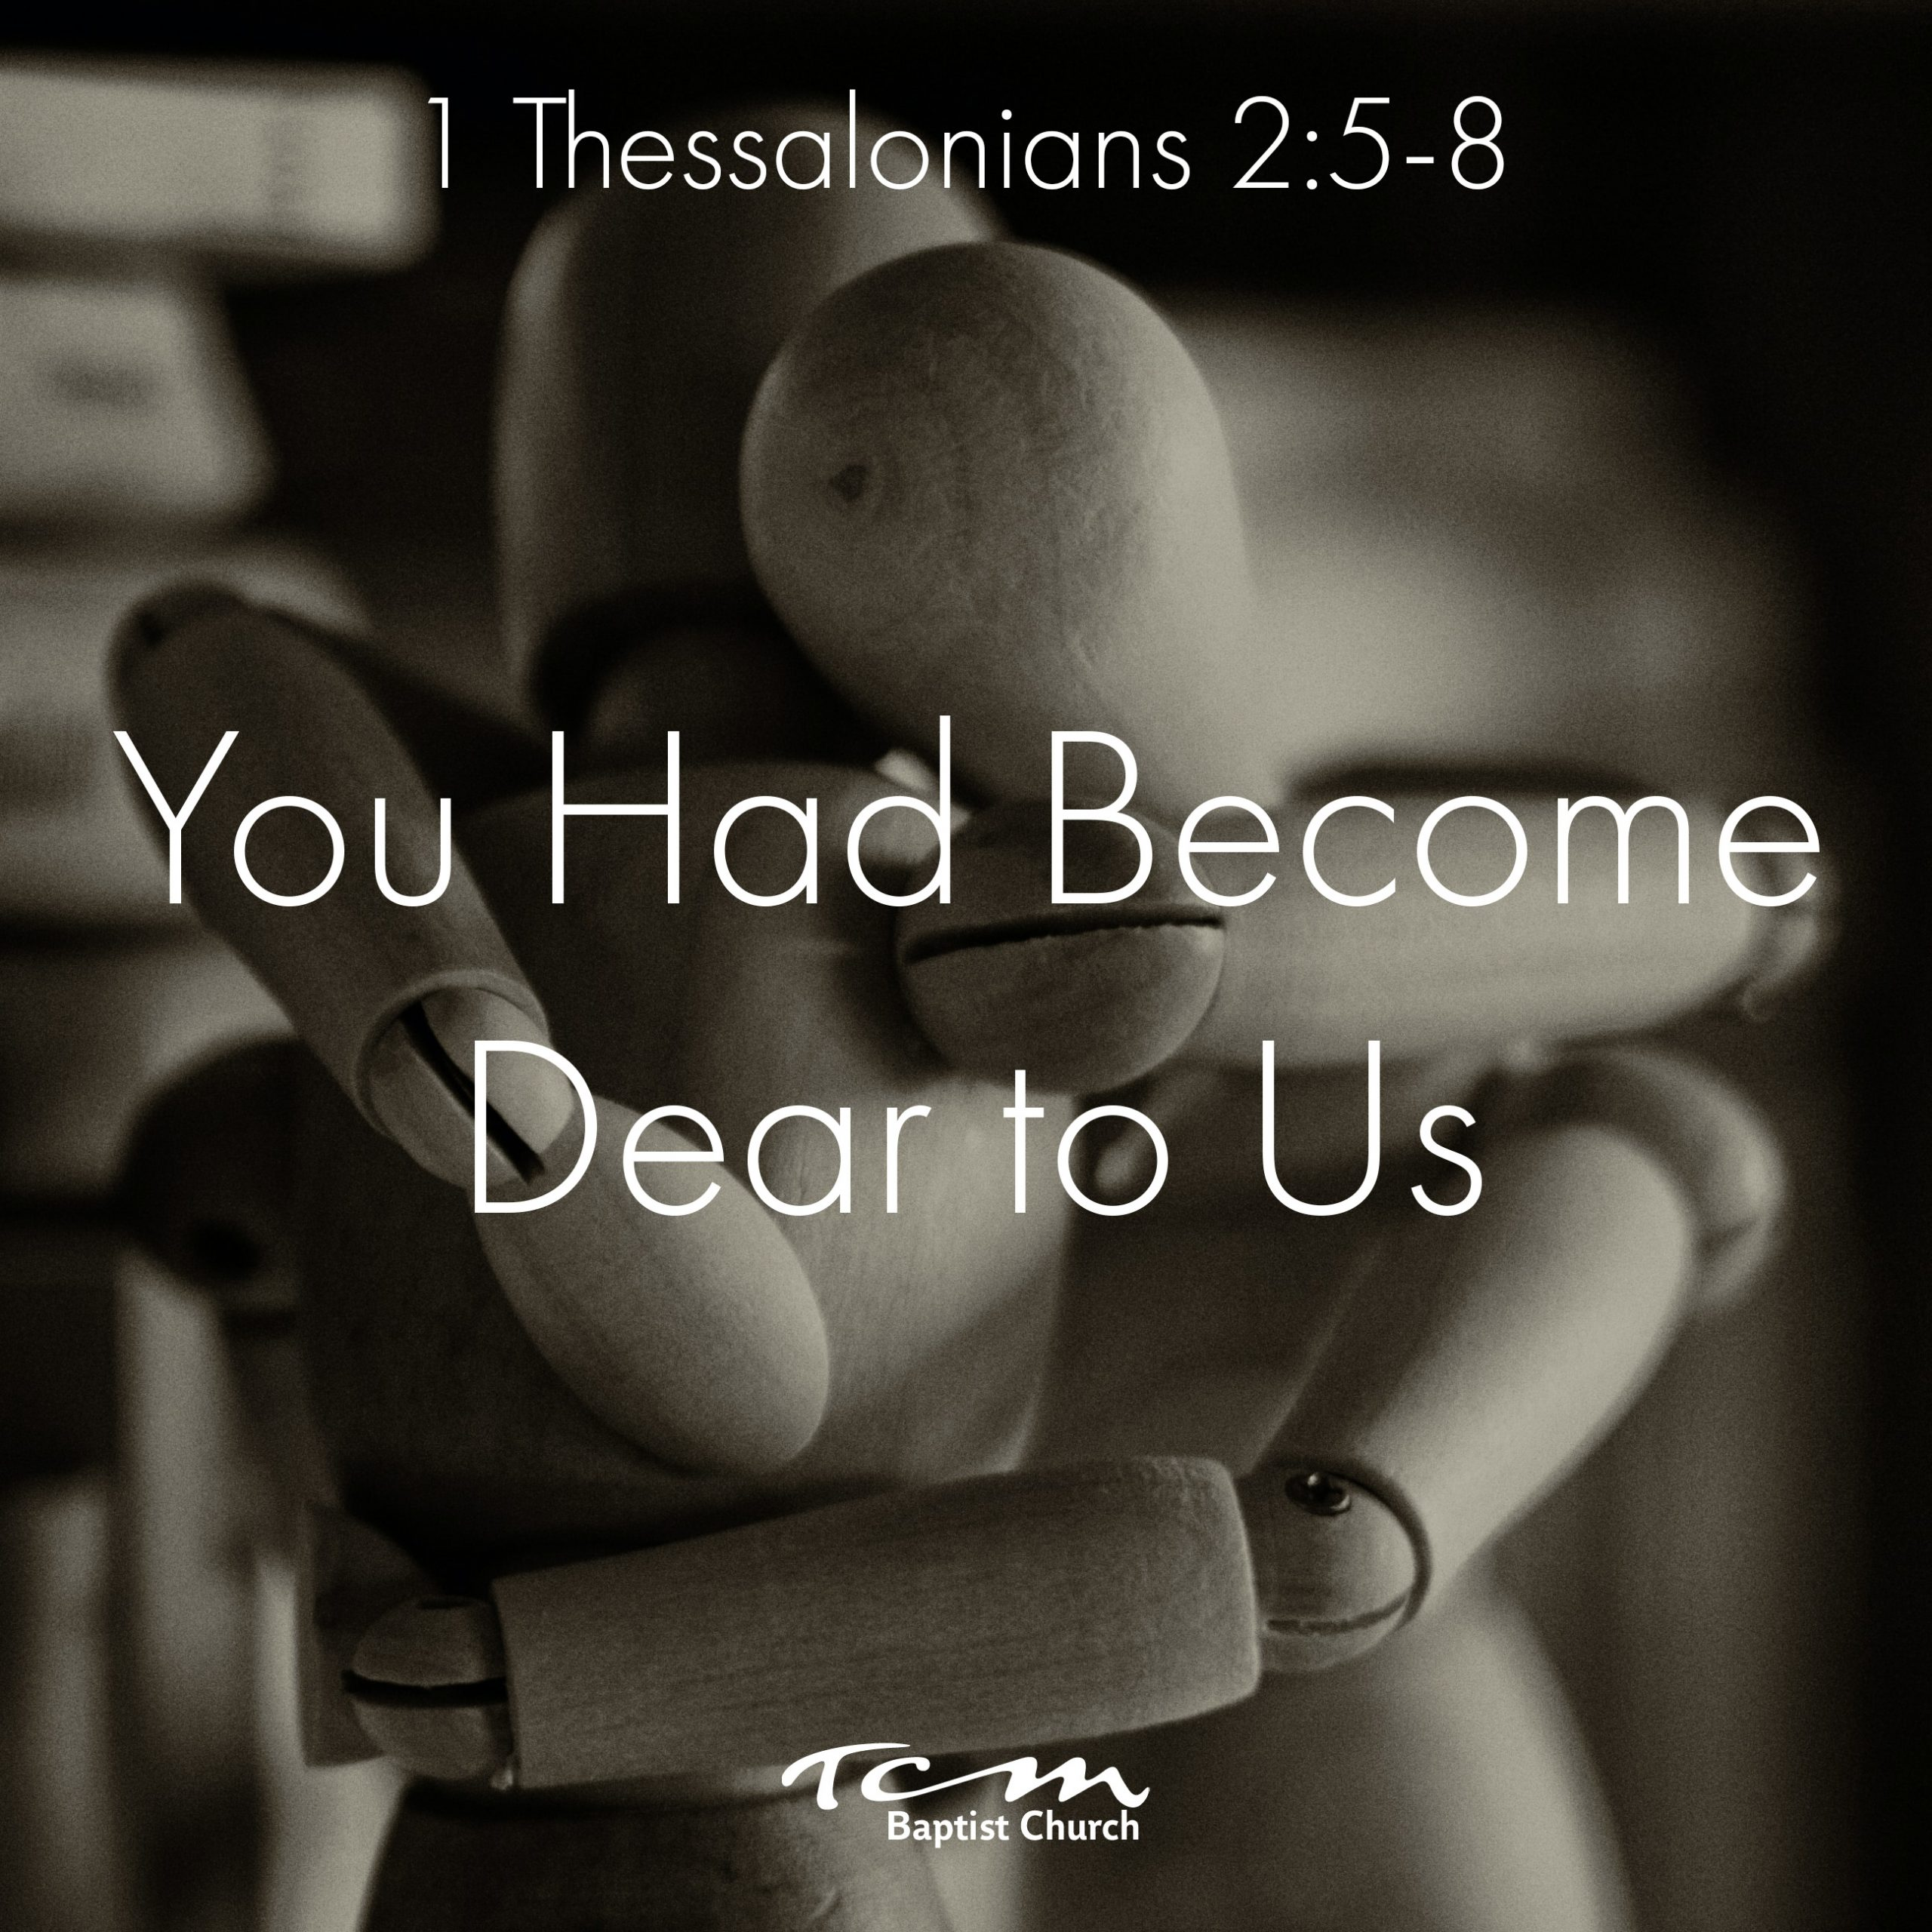 You had become dear to us Image